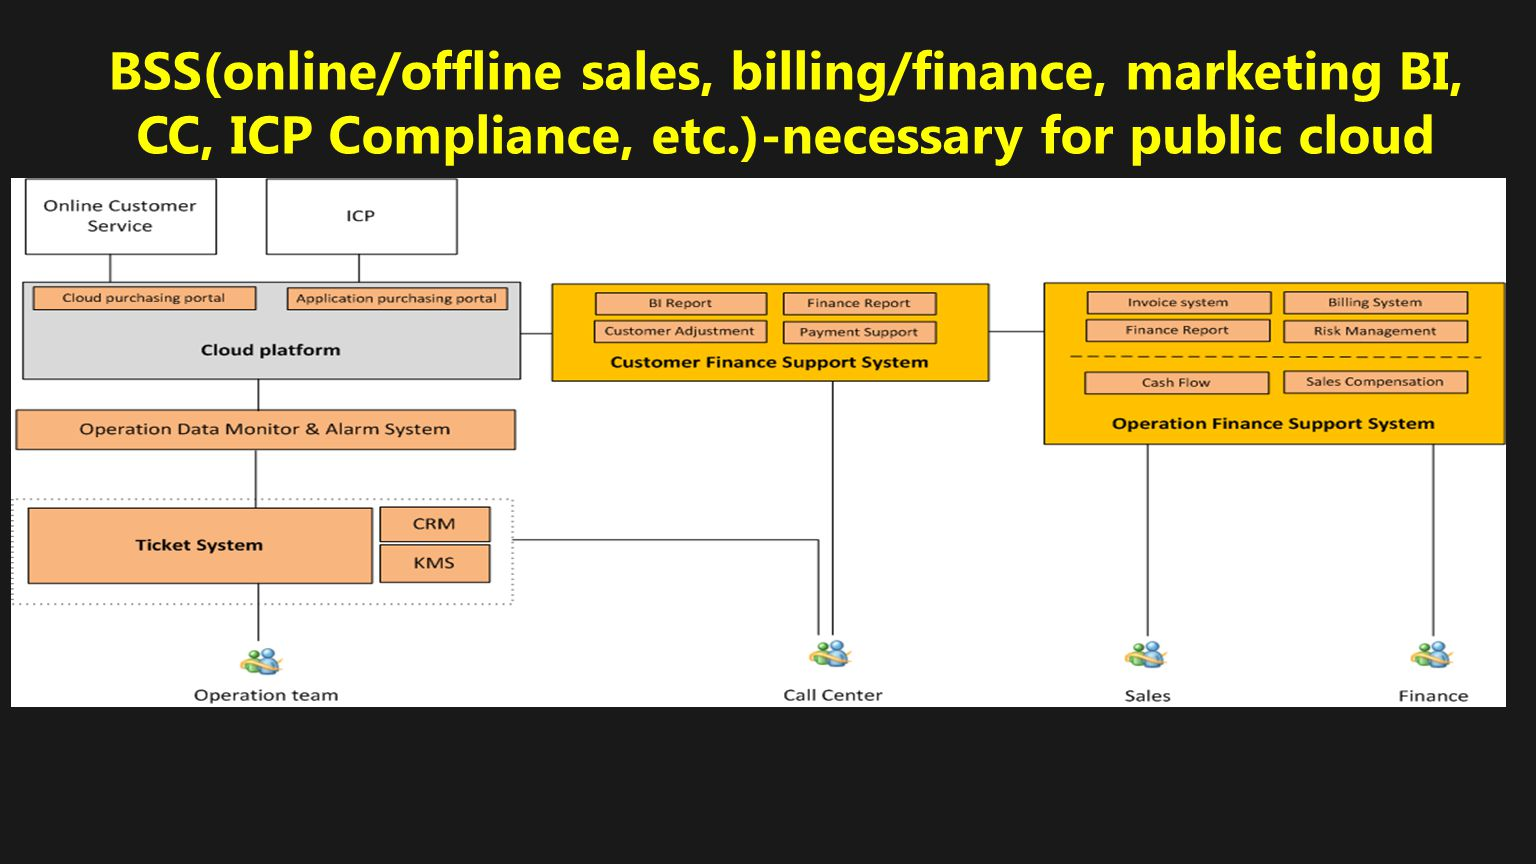 BSS(online/offline sales, billing/finance, marketing BI, CC, ICP Compliance, etc.)-necessary for public cloud